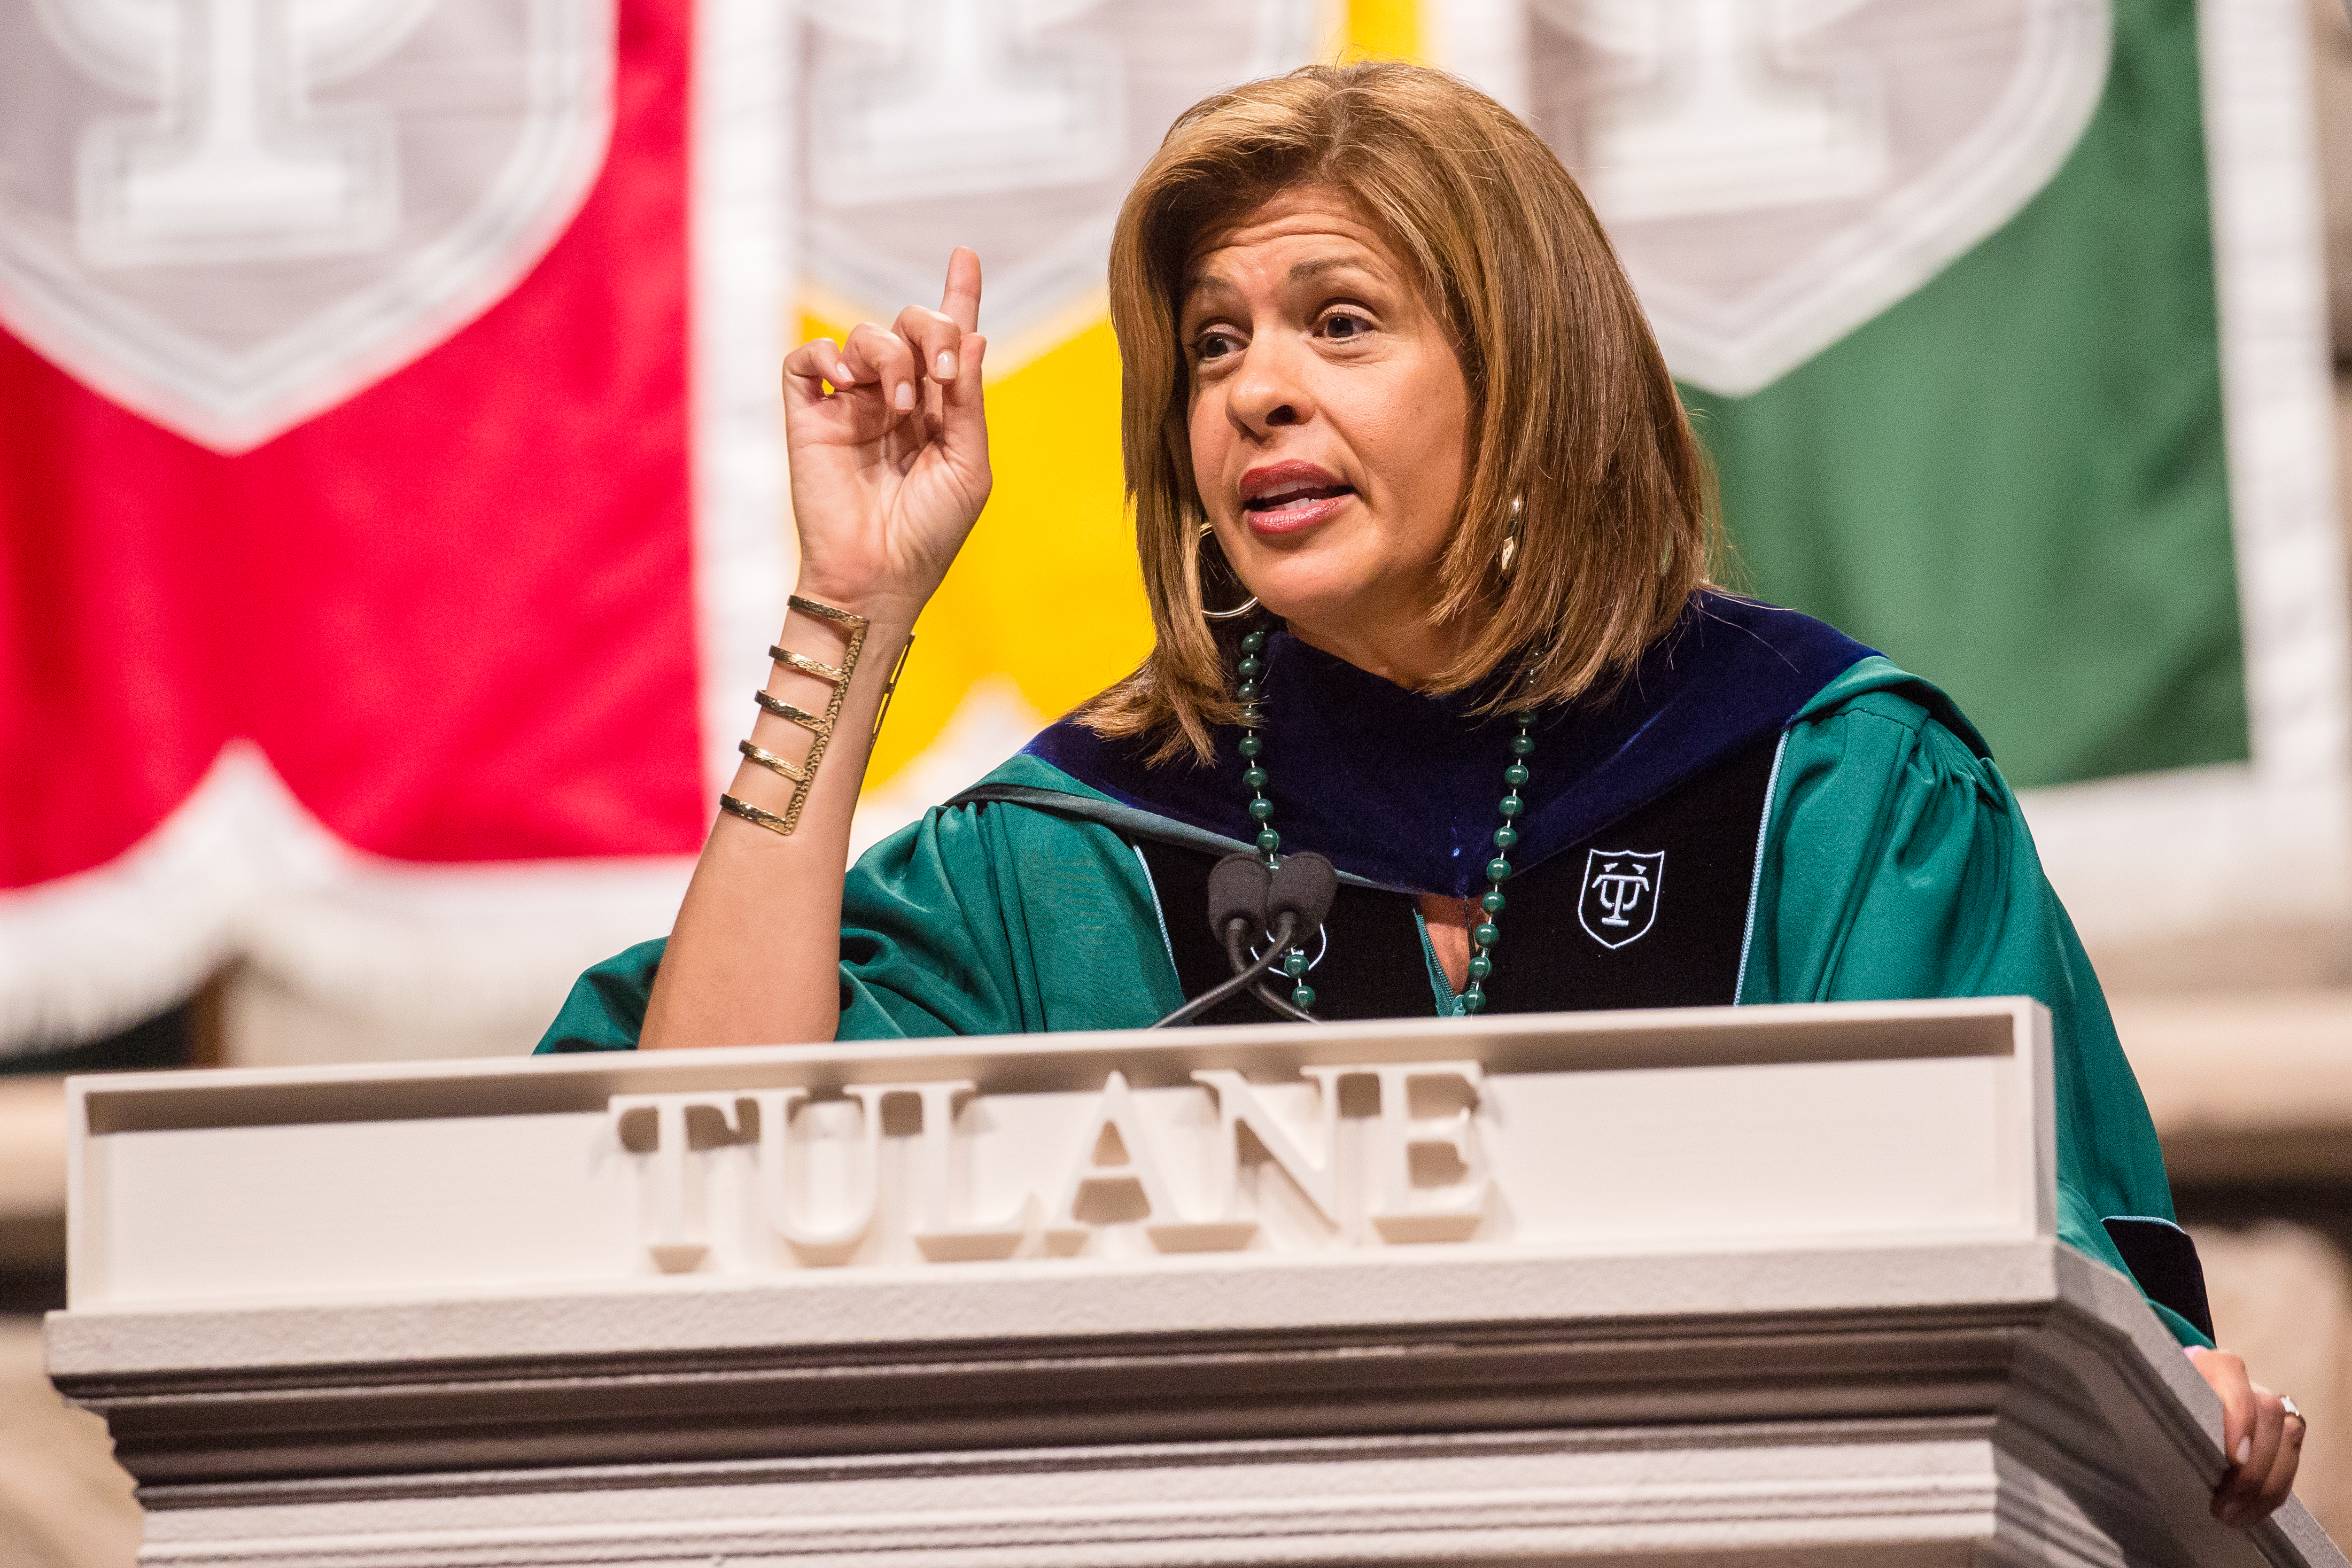 Hoda Kotb delivers Tulane University commencement address at The Mercedes-Benz Superdome on May 14, 2016 in New Orleans, Louisiana.